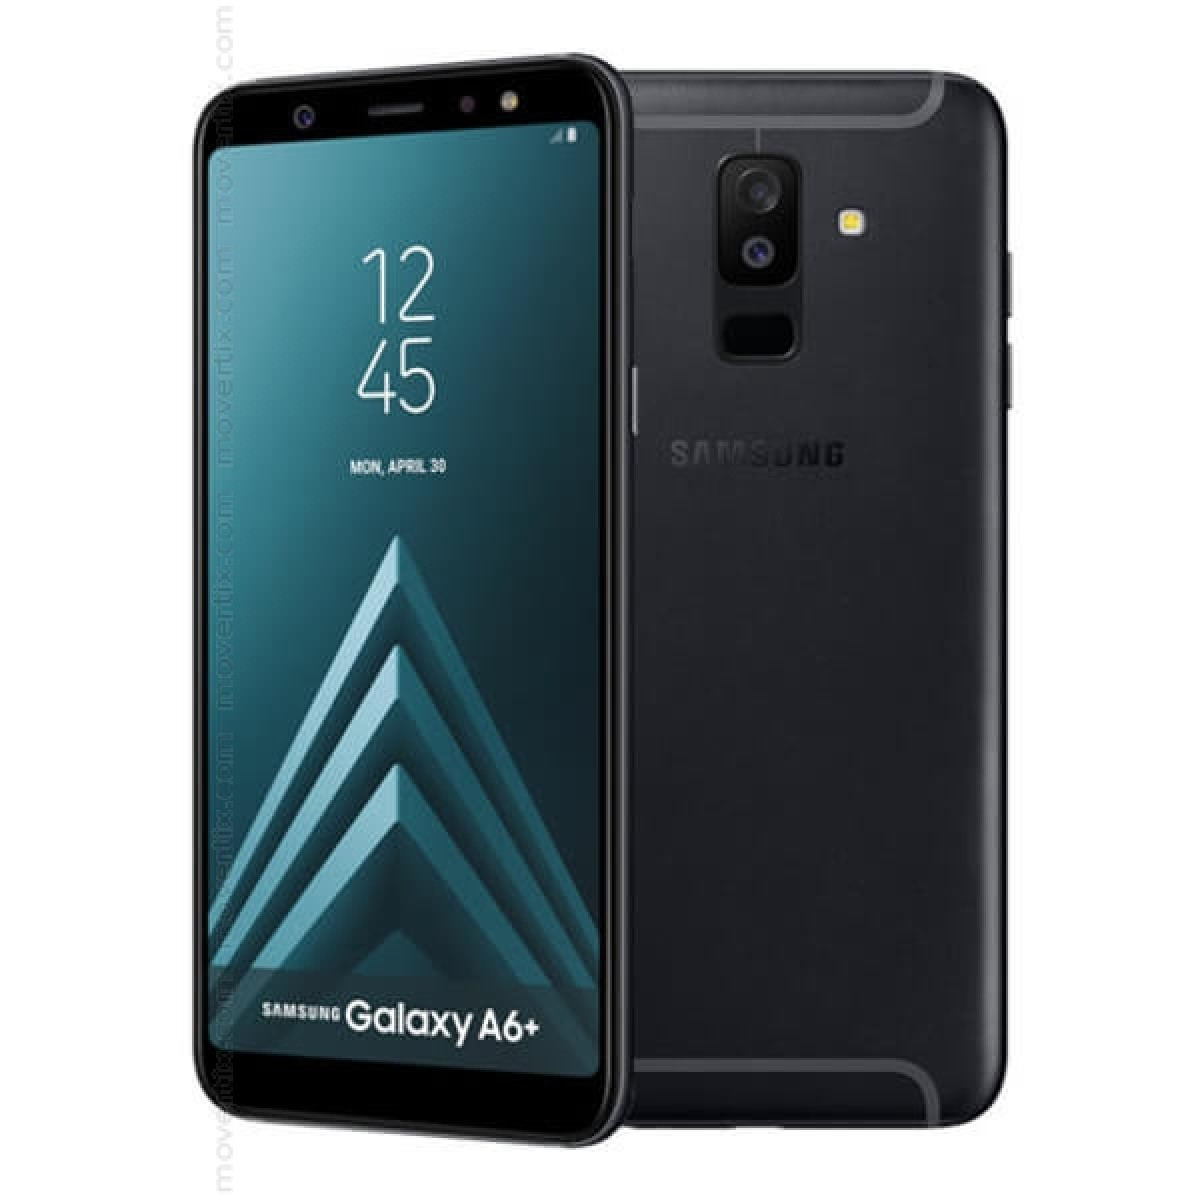 samsung galaxy a6 plus 2018 black 32gb and 3gb ram 8801643340384 movertix mobile phones shop. Black Bedroom Furniture Sets. Home Design Ideas